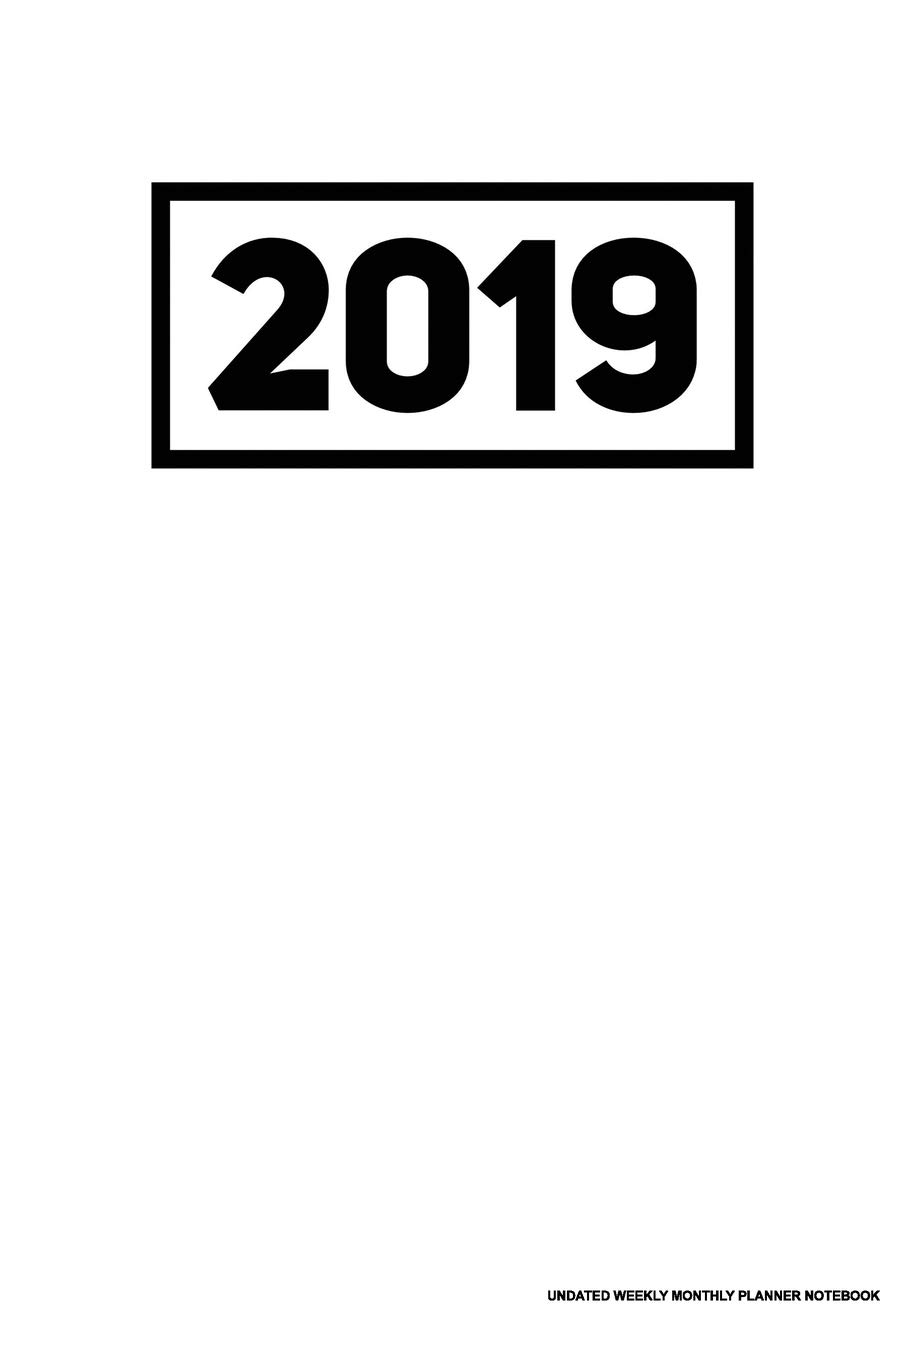 2019 Undated Weekly Monthly Planner Notebook: White Cover ...